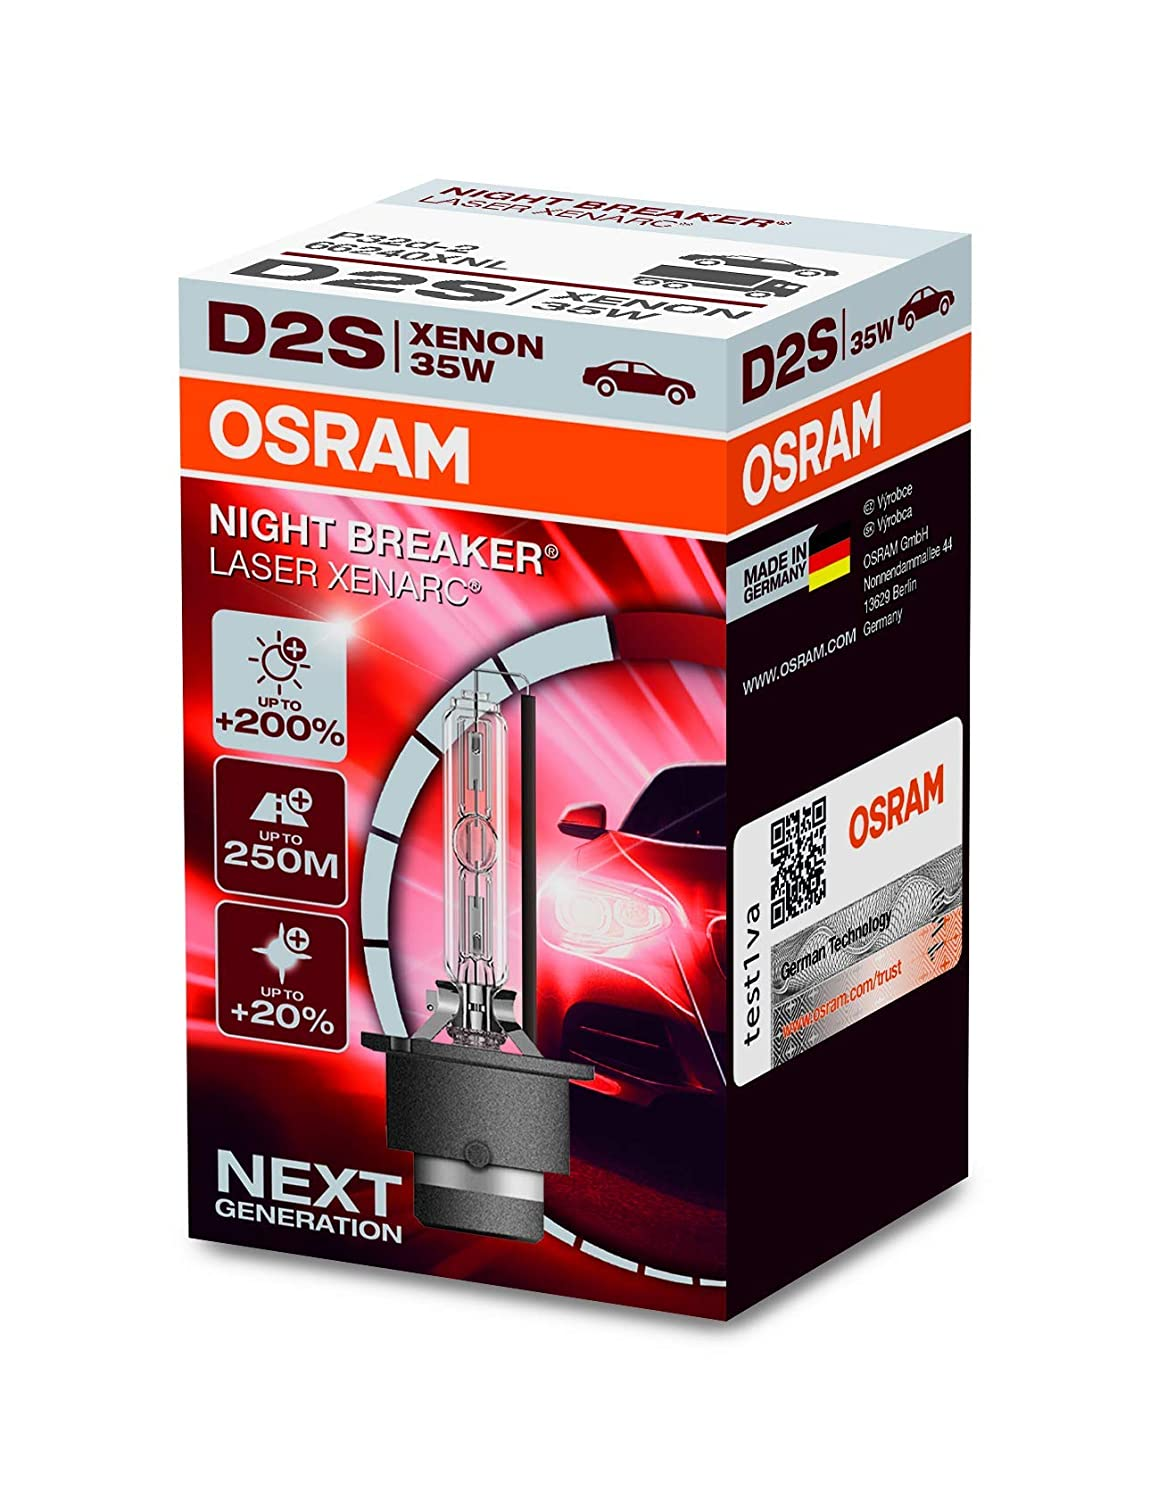 HID xenon bulb OSRAM XENARC NIGHT BREAKER LASER D2S folding box 200/% more brightness discharge lamp 66240XNL 1 lamp